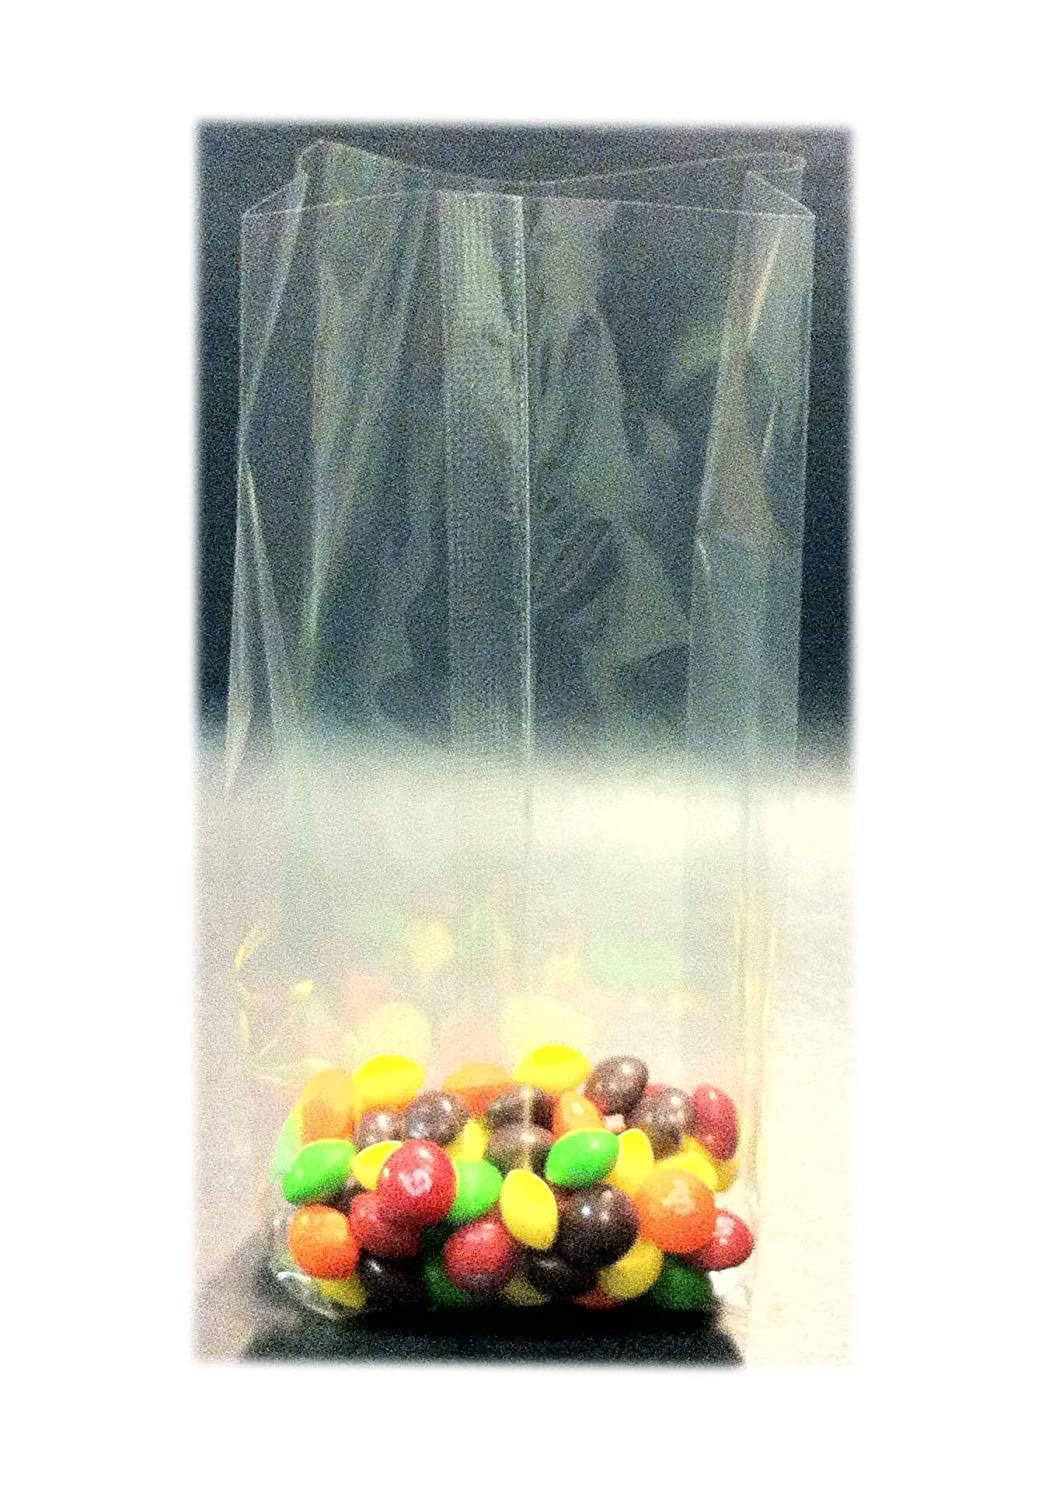 100 Pcs 5x4x15 Clear Side Gusseted Cello Cellophane Bags Good for Candy Cookie Bakery (by UNIQUEPACKING) 6280192